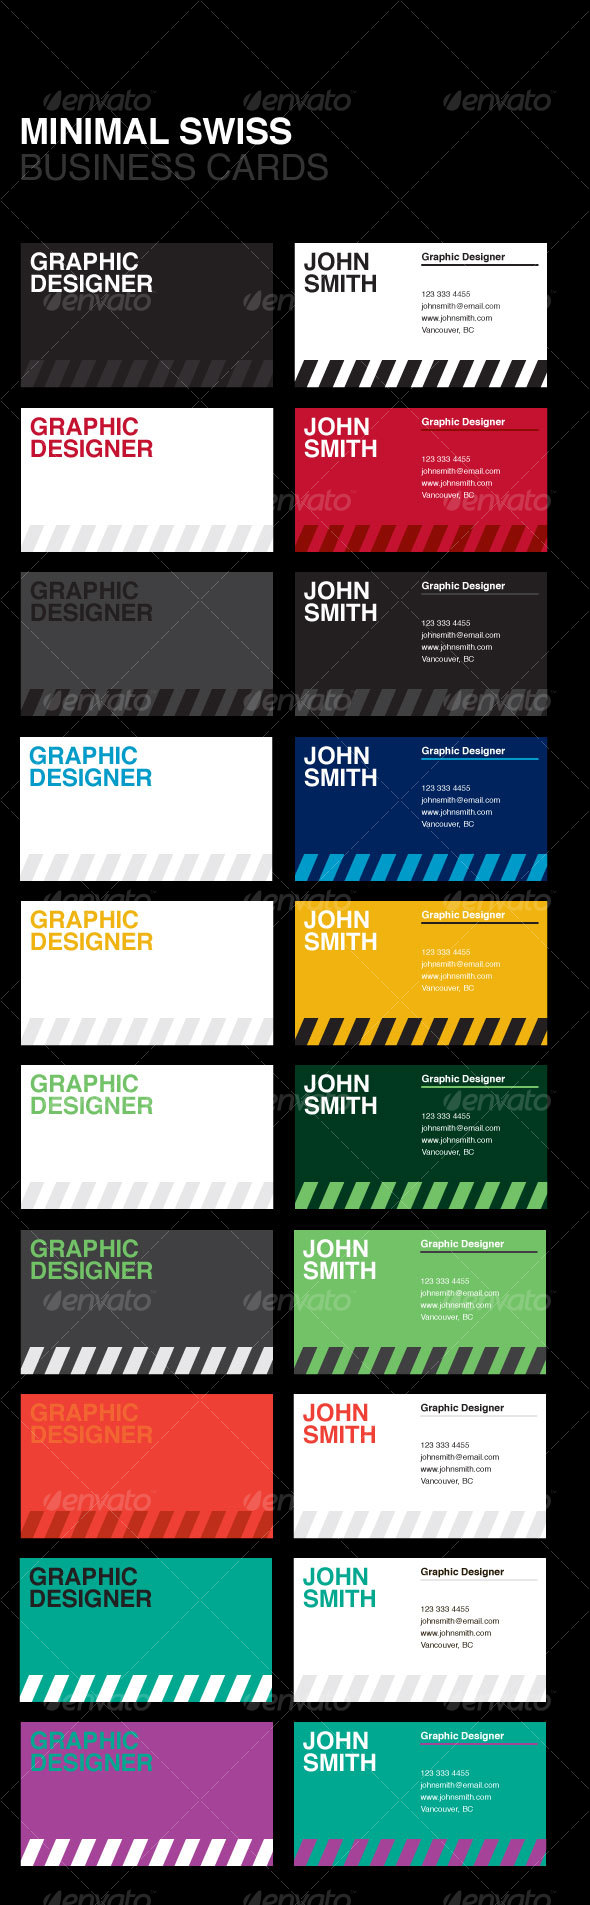 GraphicRiver Swiss Minimal Business Cards 102618